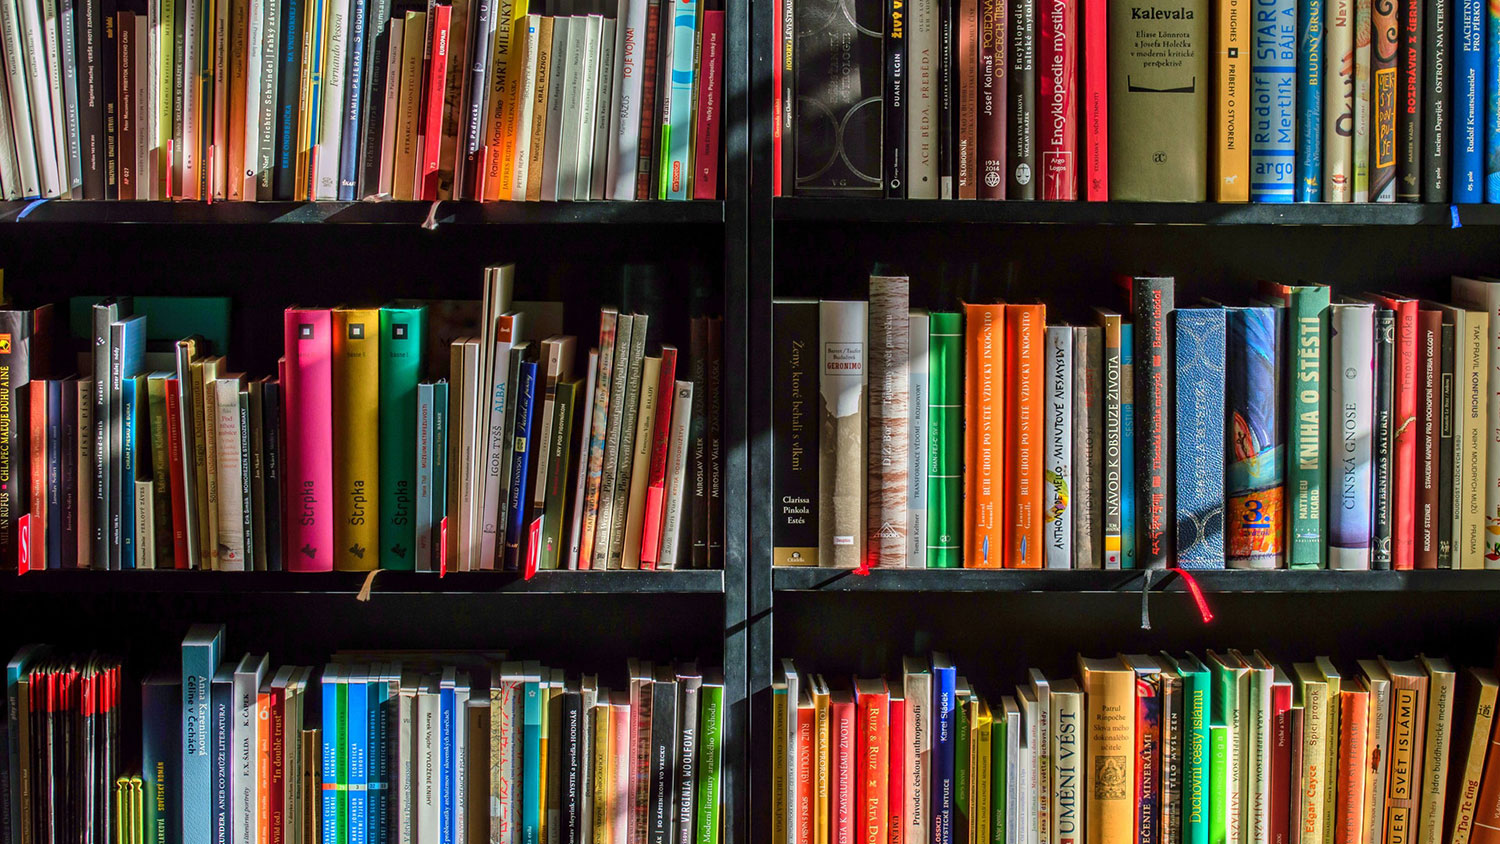 Colorful books on a shelf